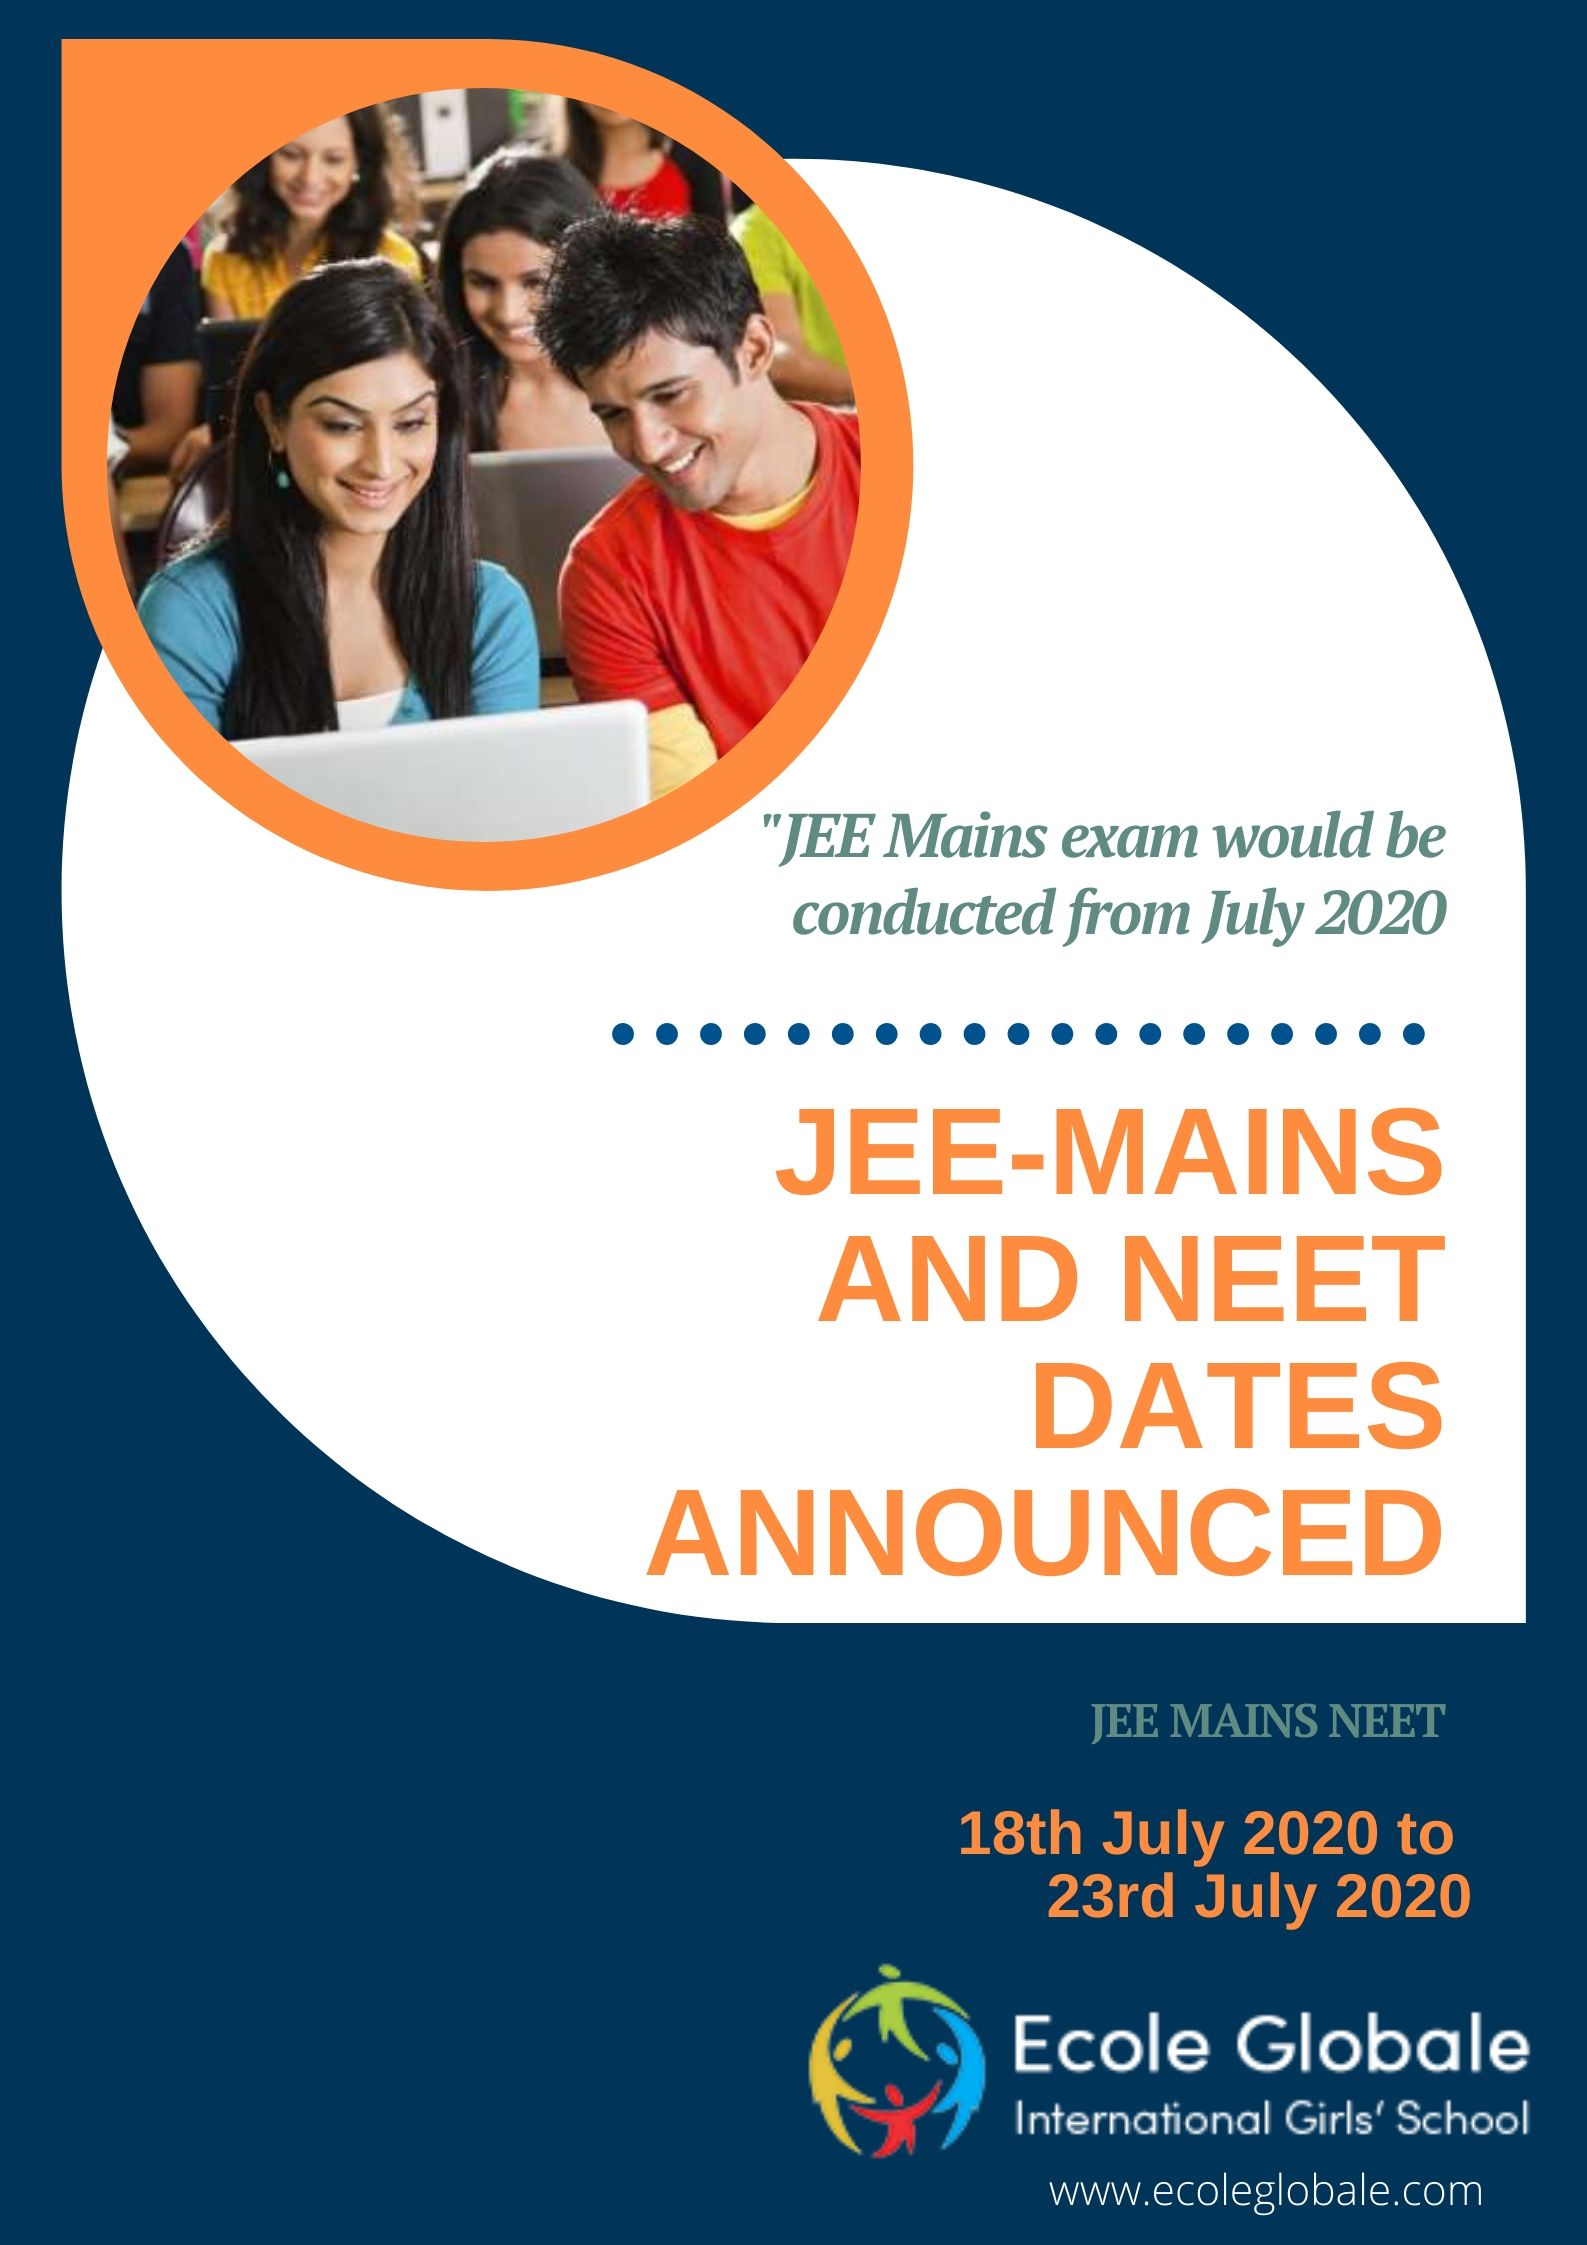 JEE MAINS AND NEET TO BE CONDUCTED IN JULY: HRD MINISTER ANNOUNCES THE DATES